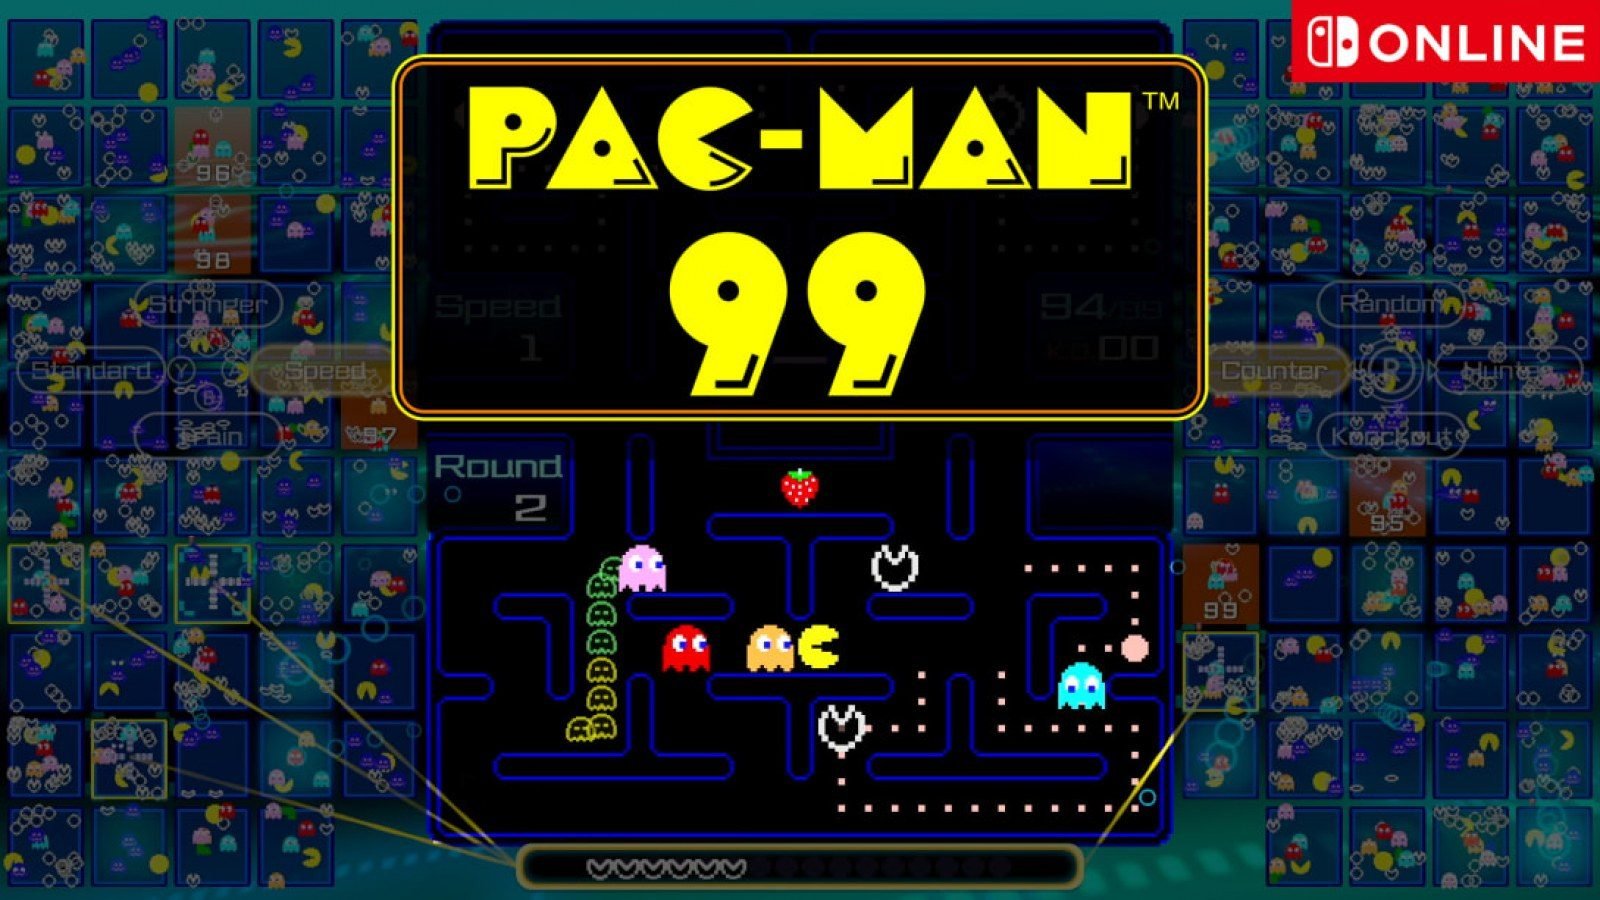 Pac-Man 99 Announced, Available Now For Nintendo Switch